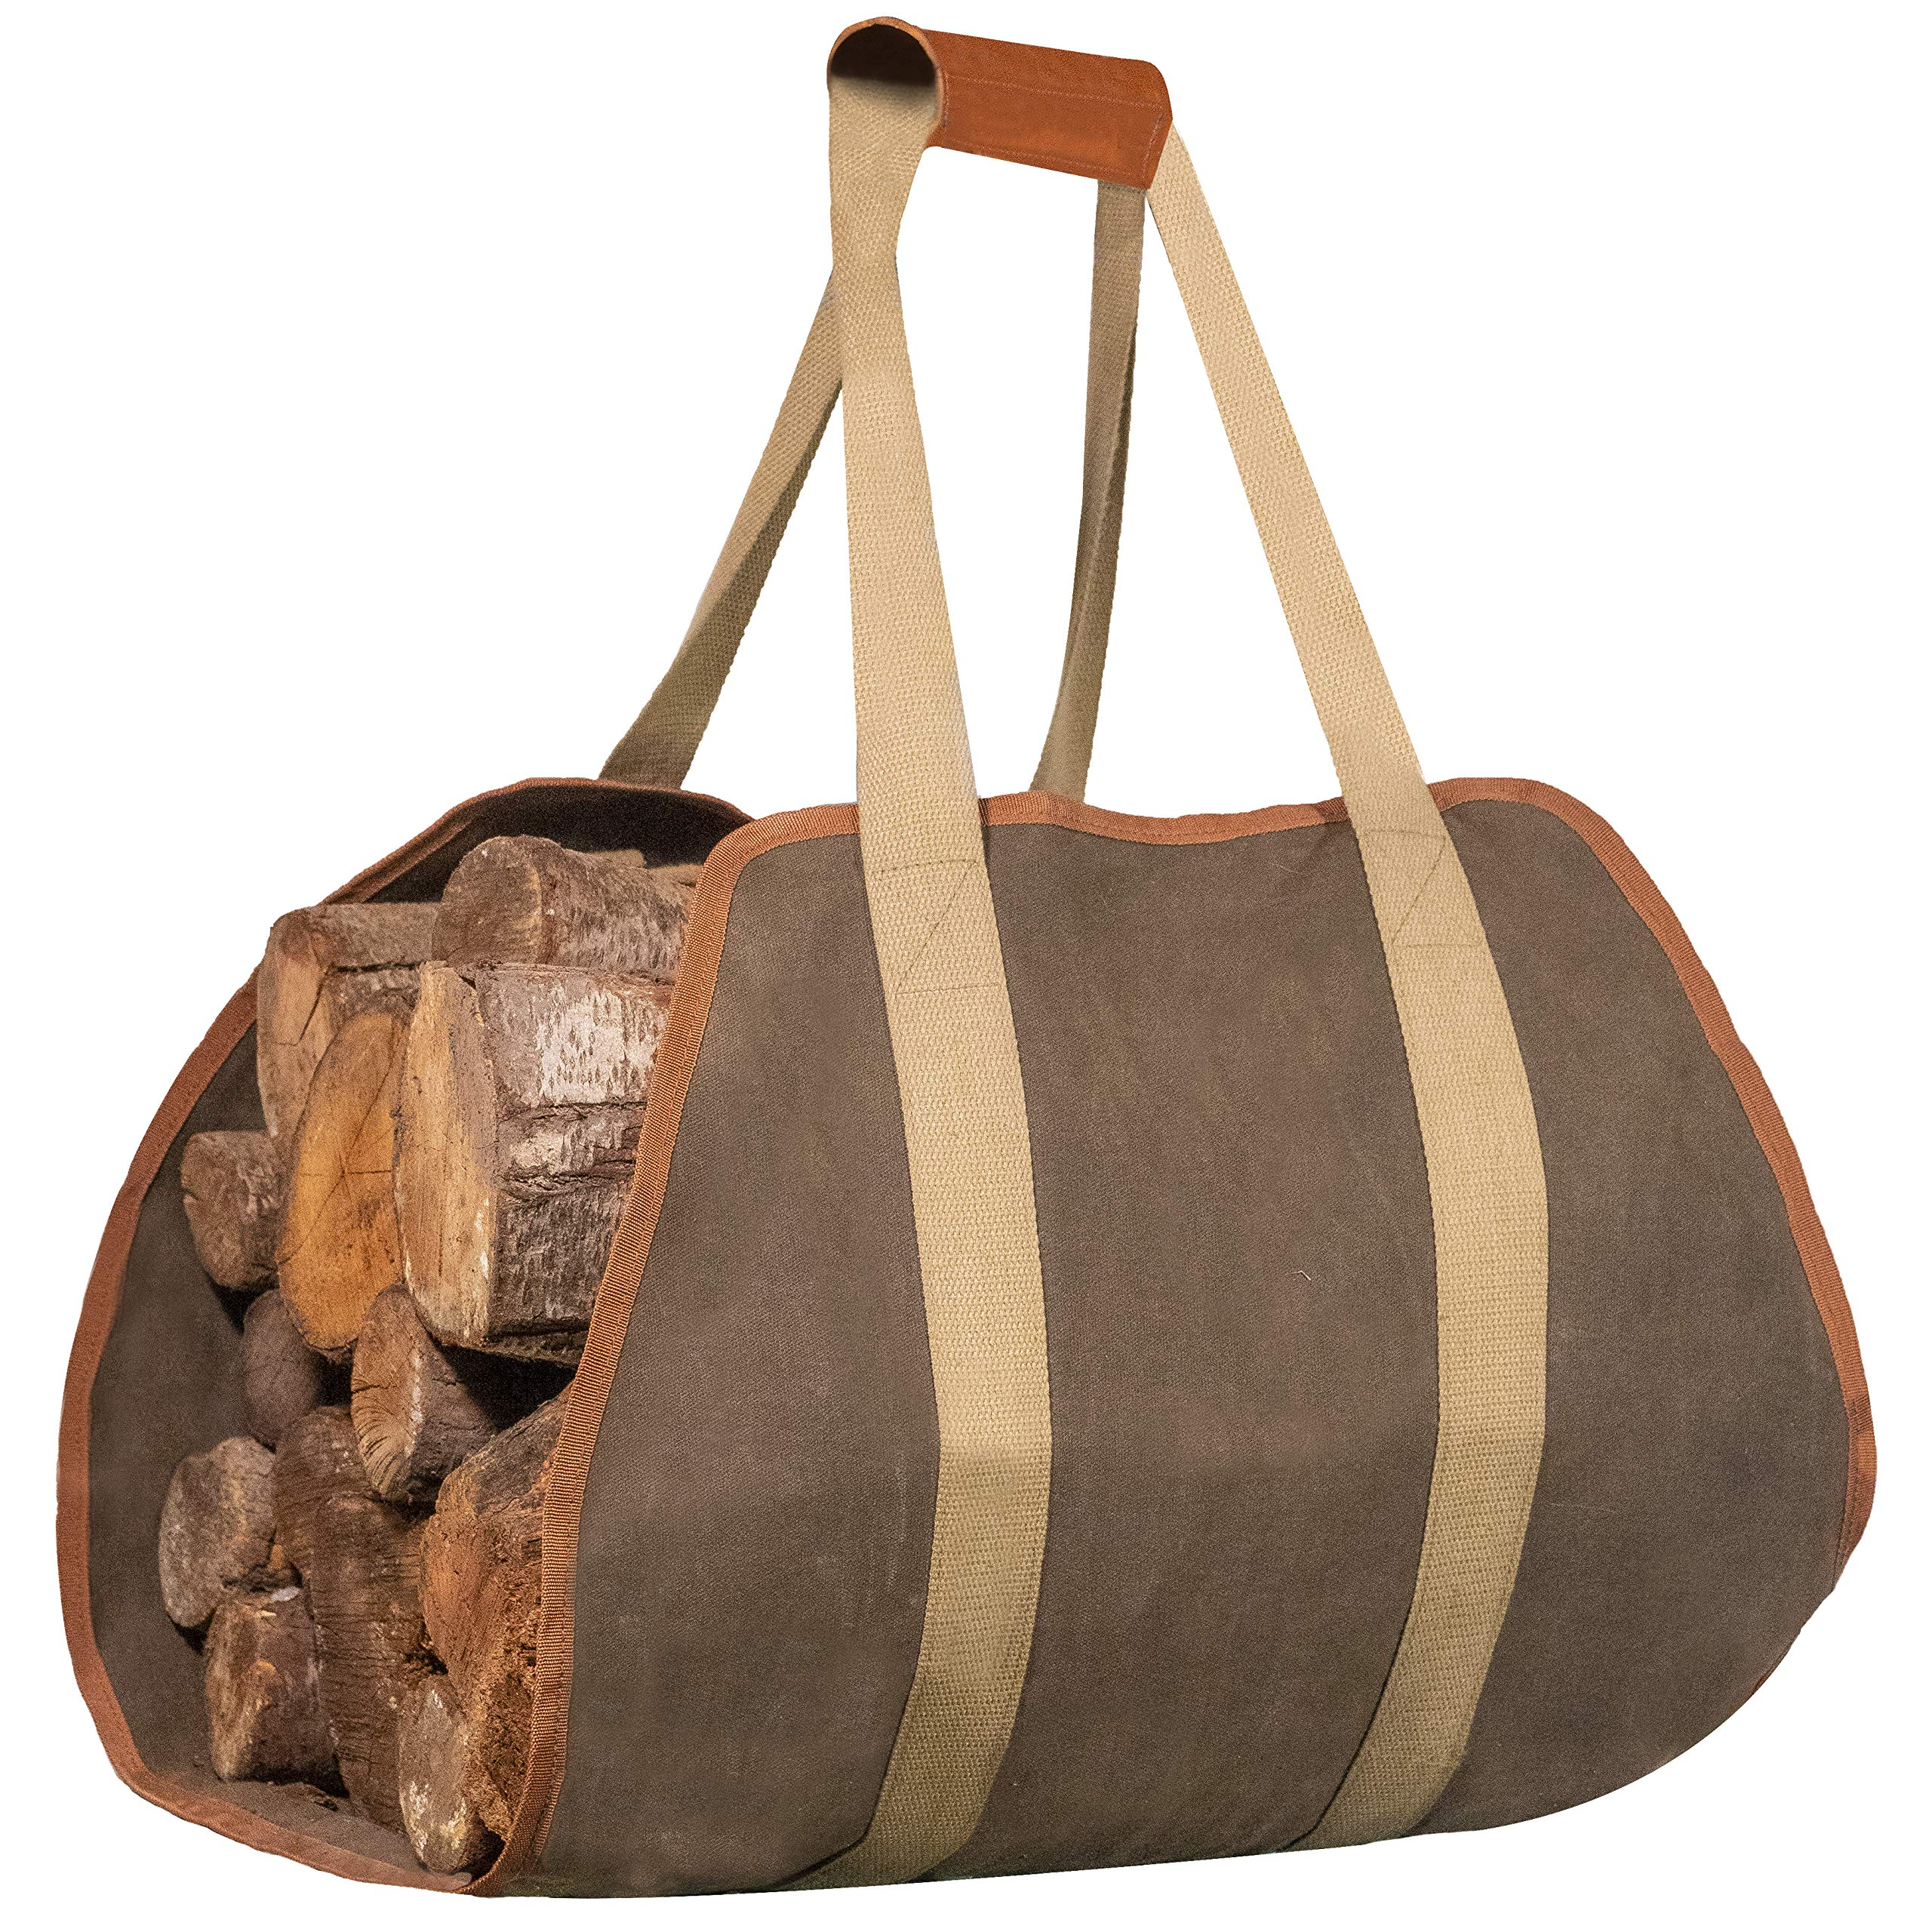 IGGY BLISS Firewood Carrier - Waxed Canvas Tote Bag with Padded Leather Handles - Extra Large (40''x19'') - for Fireplace or Camping or Outdoor Fire Pit or Bonfire by IGGY BLISS